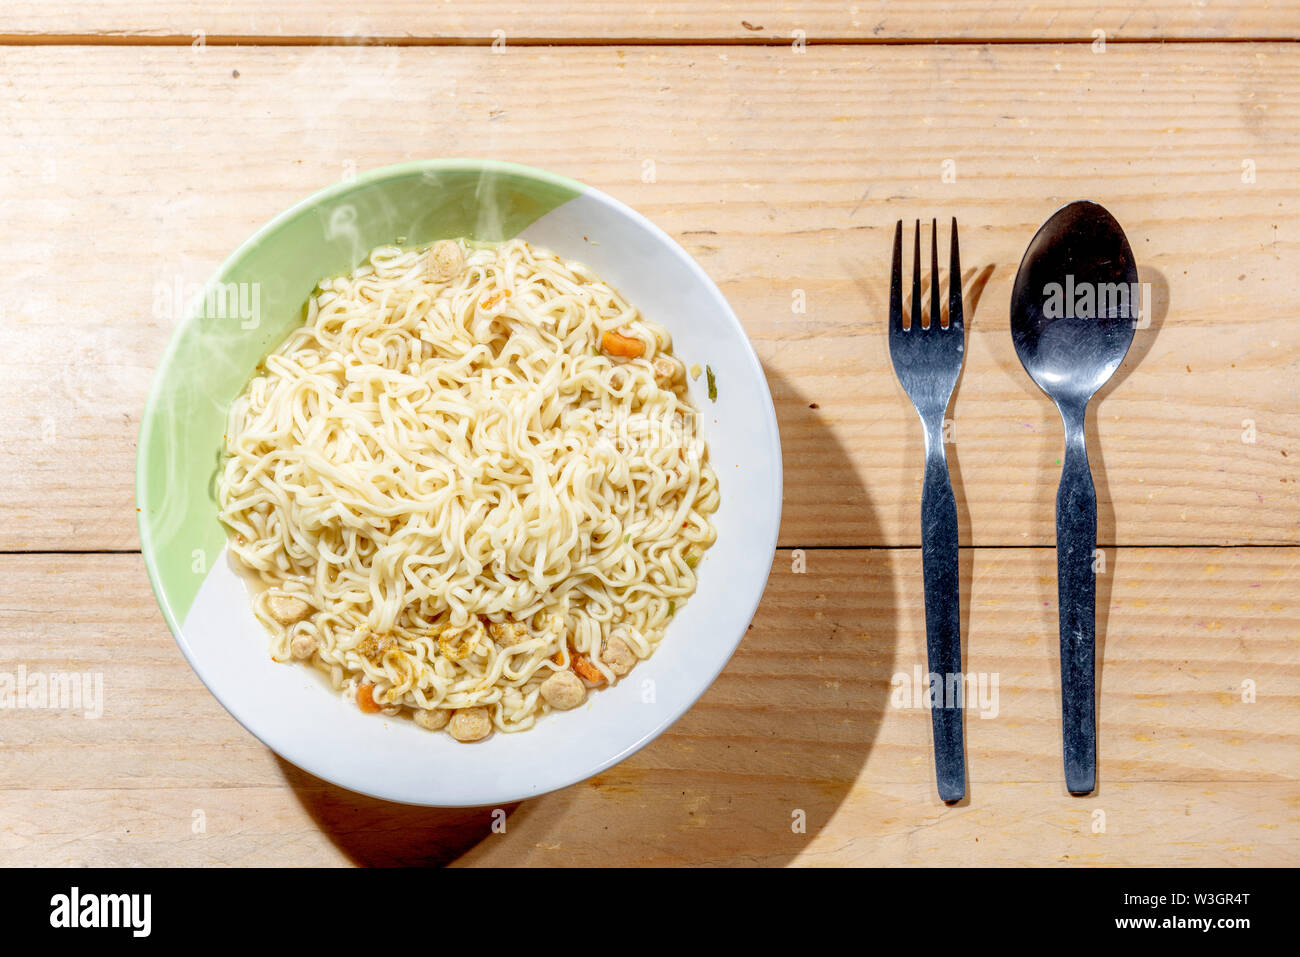 Noodles on the bowl with spoon and fork on wooden table background - Stock Image